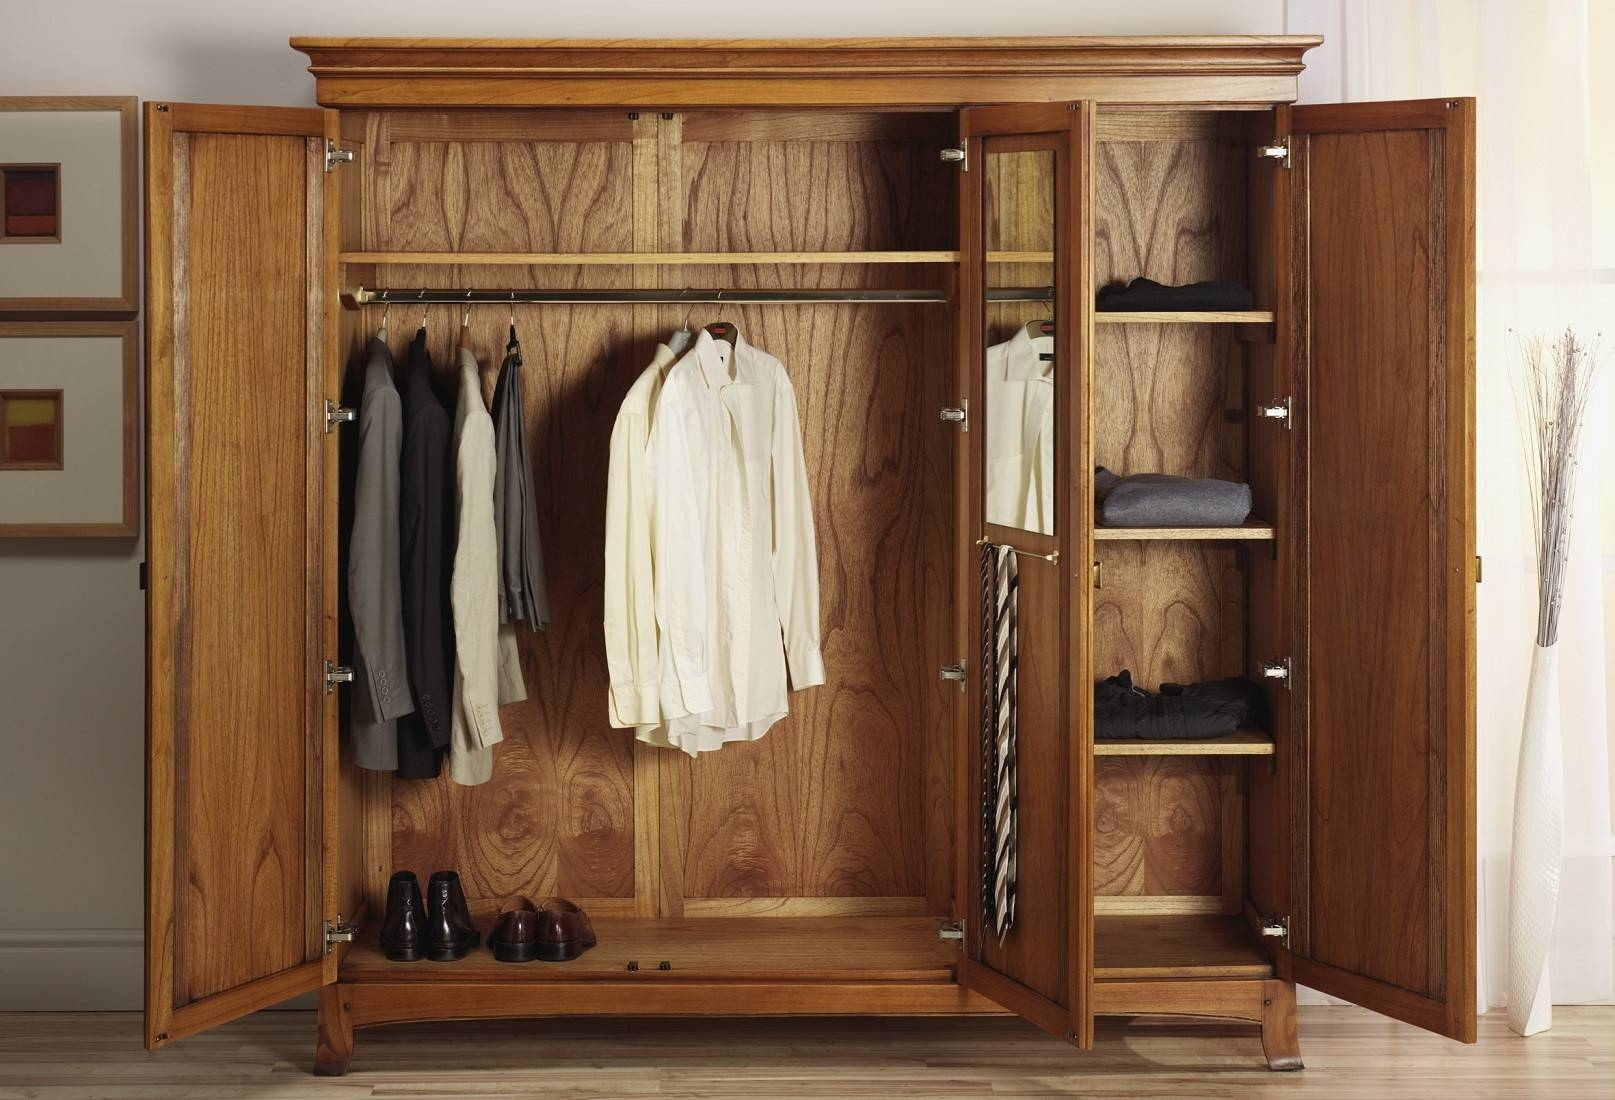 Lincoln Solid Ash 3 Door Triple Wardrobe | Oak Furniture Uk With Regard To Oak Wardrobe With Drawers And Shelves (View 10 of 30)